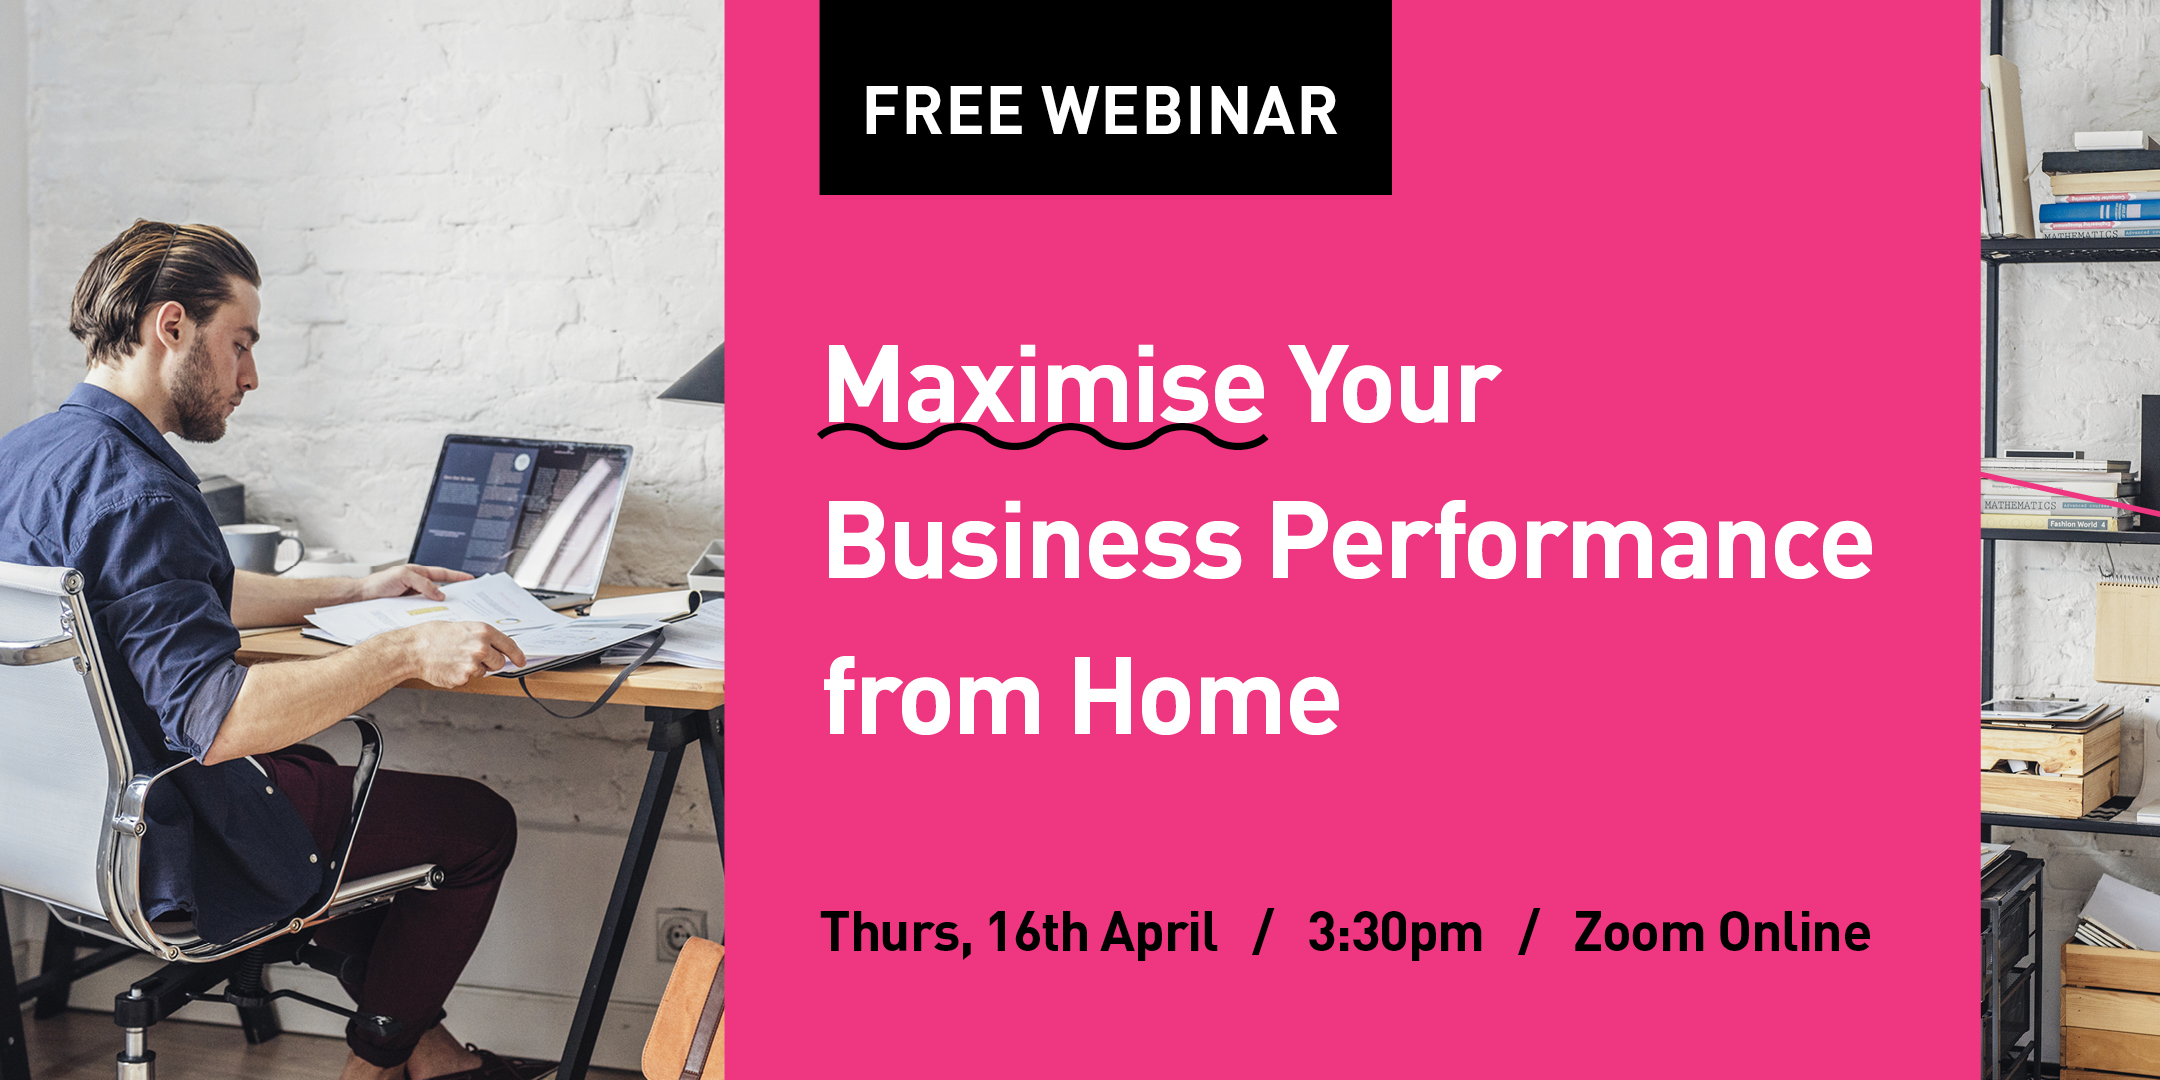 Maximise Your Business Performance from Home